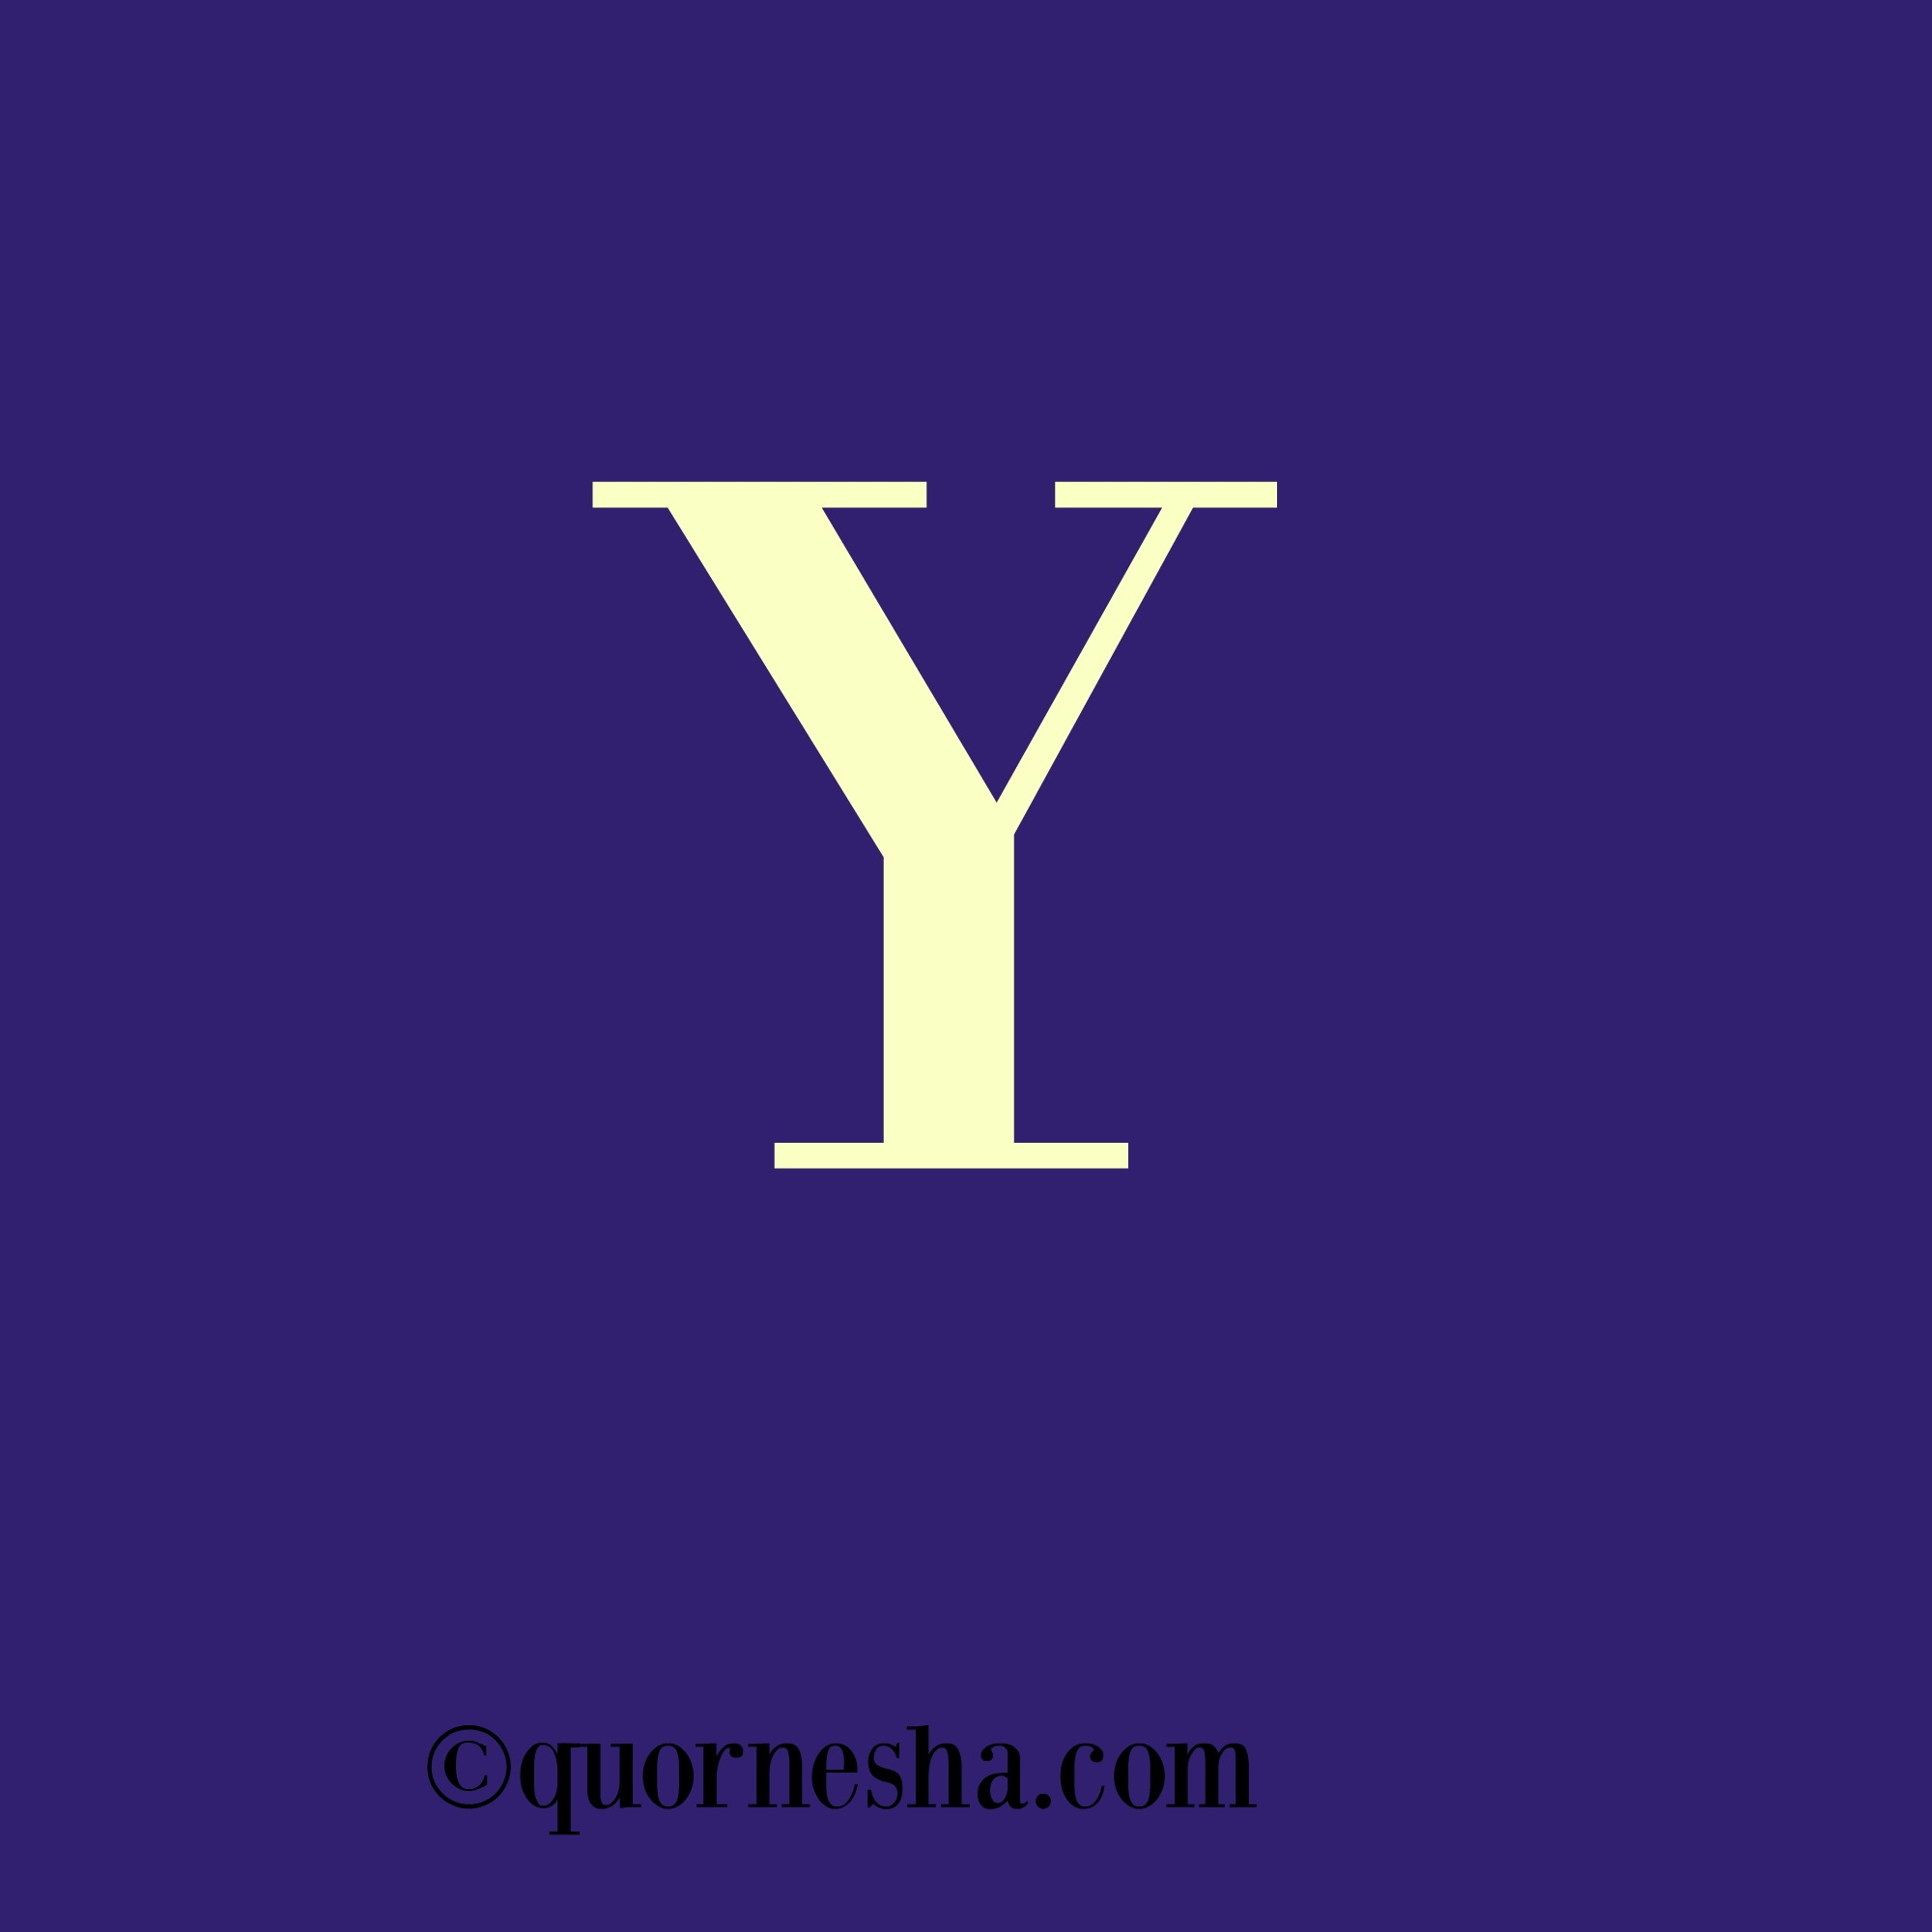 The Symbolic Meaning Of The Letter Y Whispers Channels